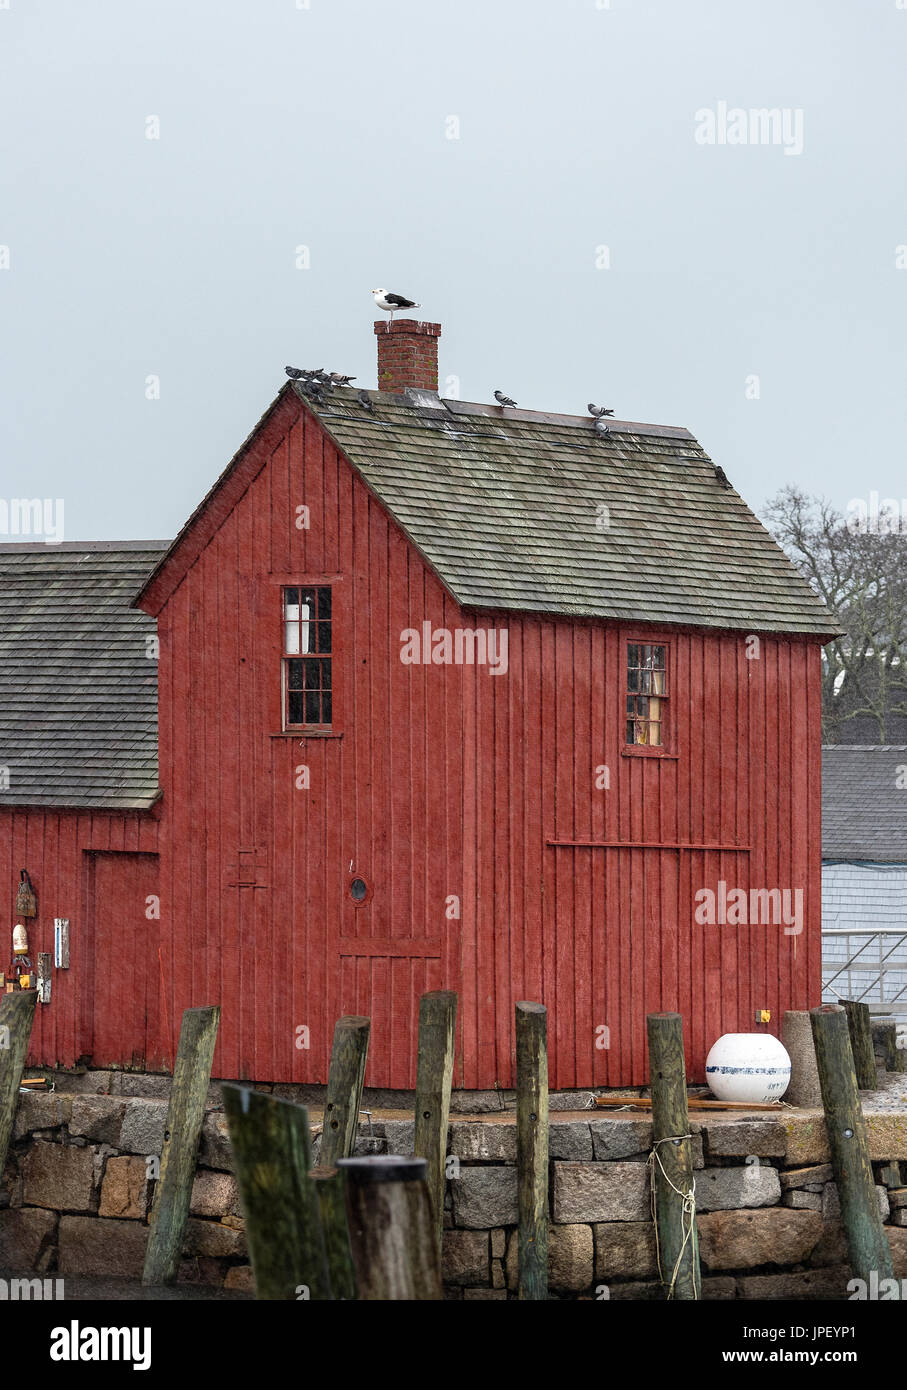 Fishing shack, Motif number 1, Rockport, Massachusetts, USA. - Stock Image